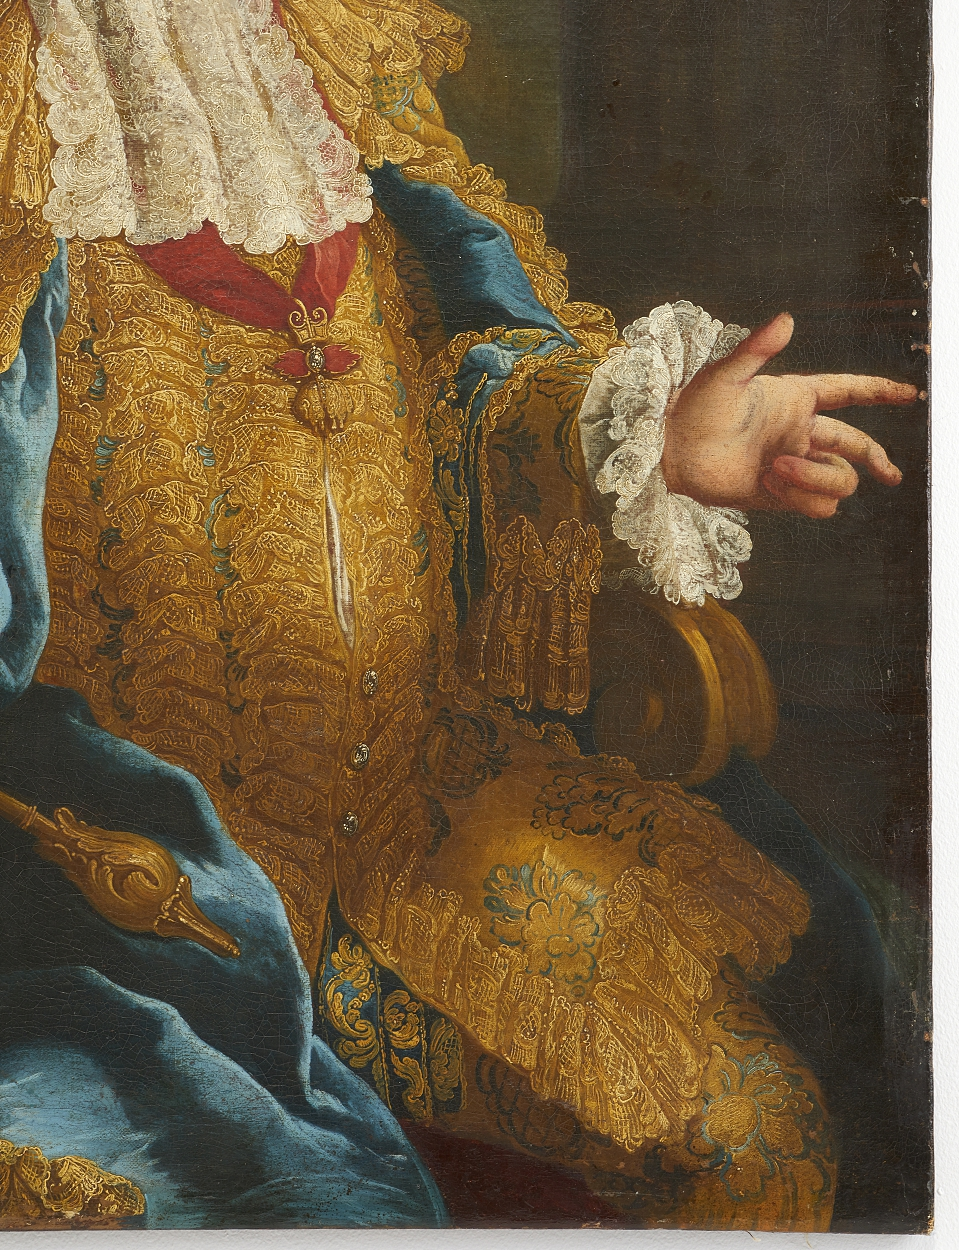 attributed to Martin van Meytens, Portraits